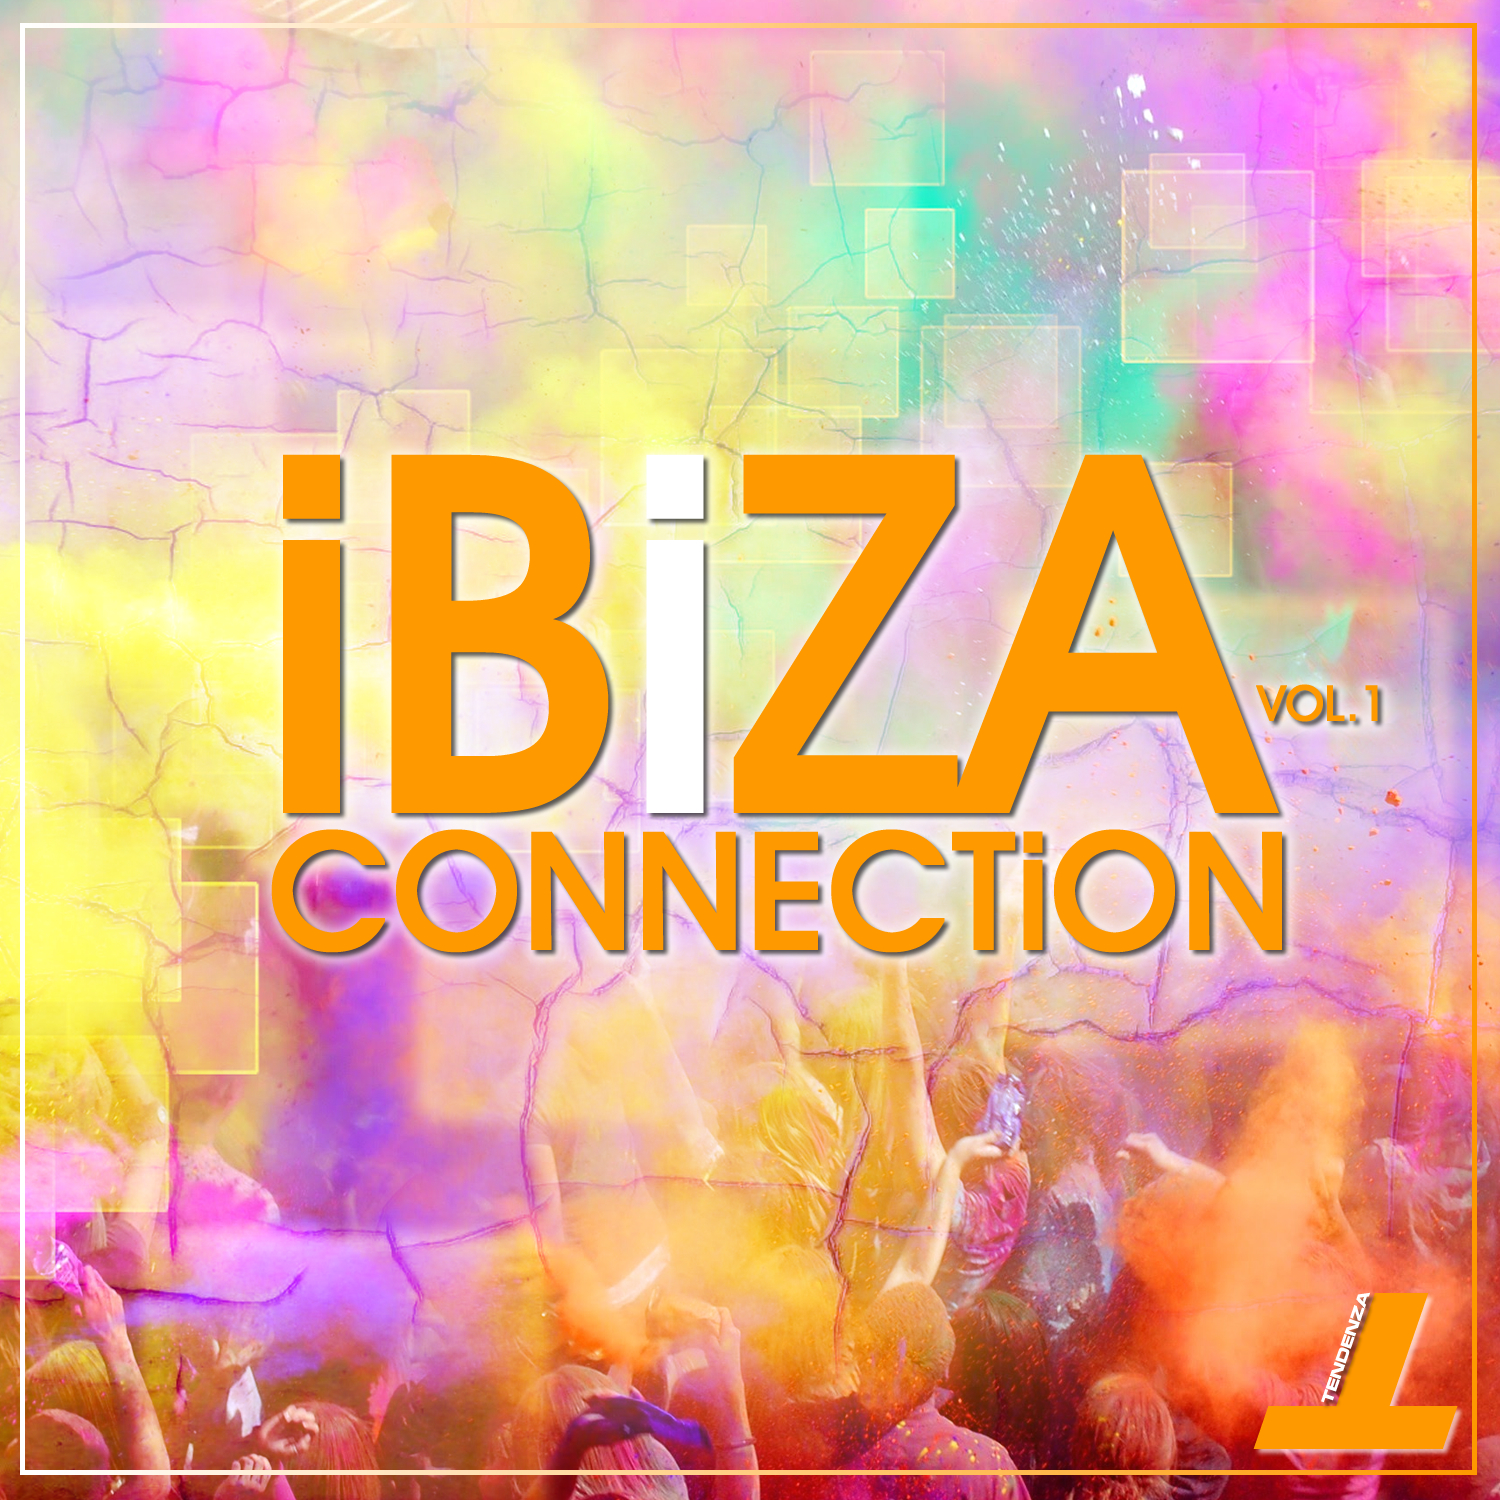 0603404073030_ibiza-connection-vol-1